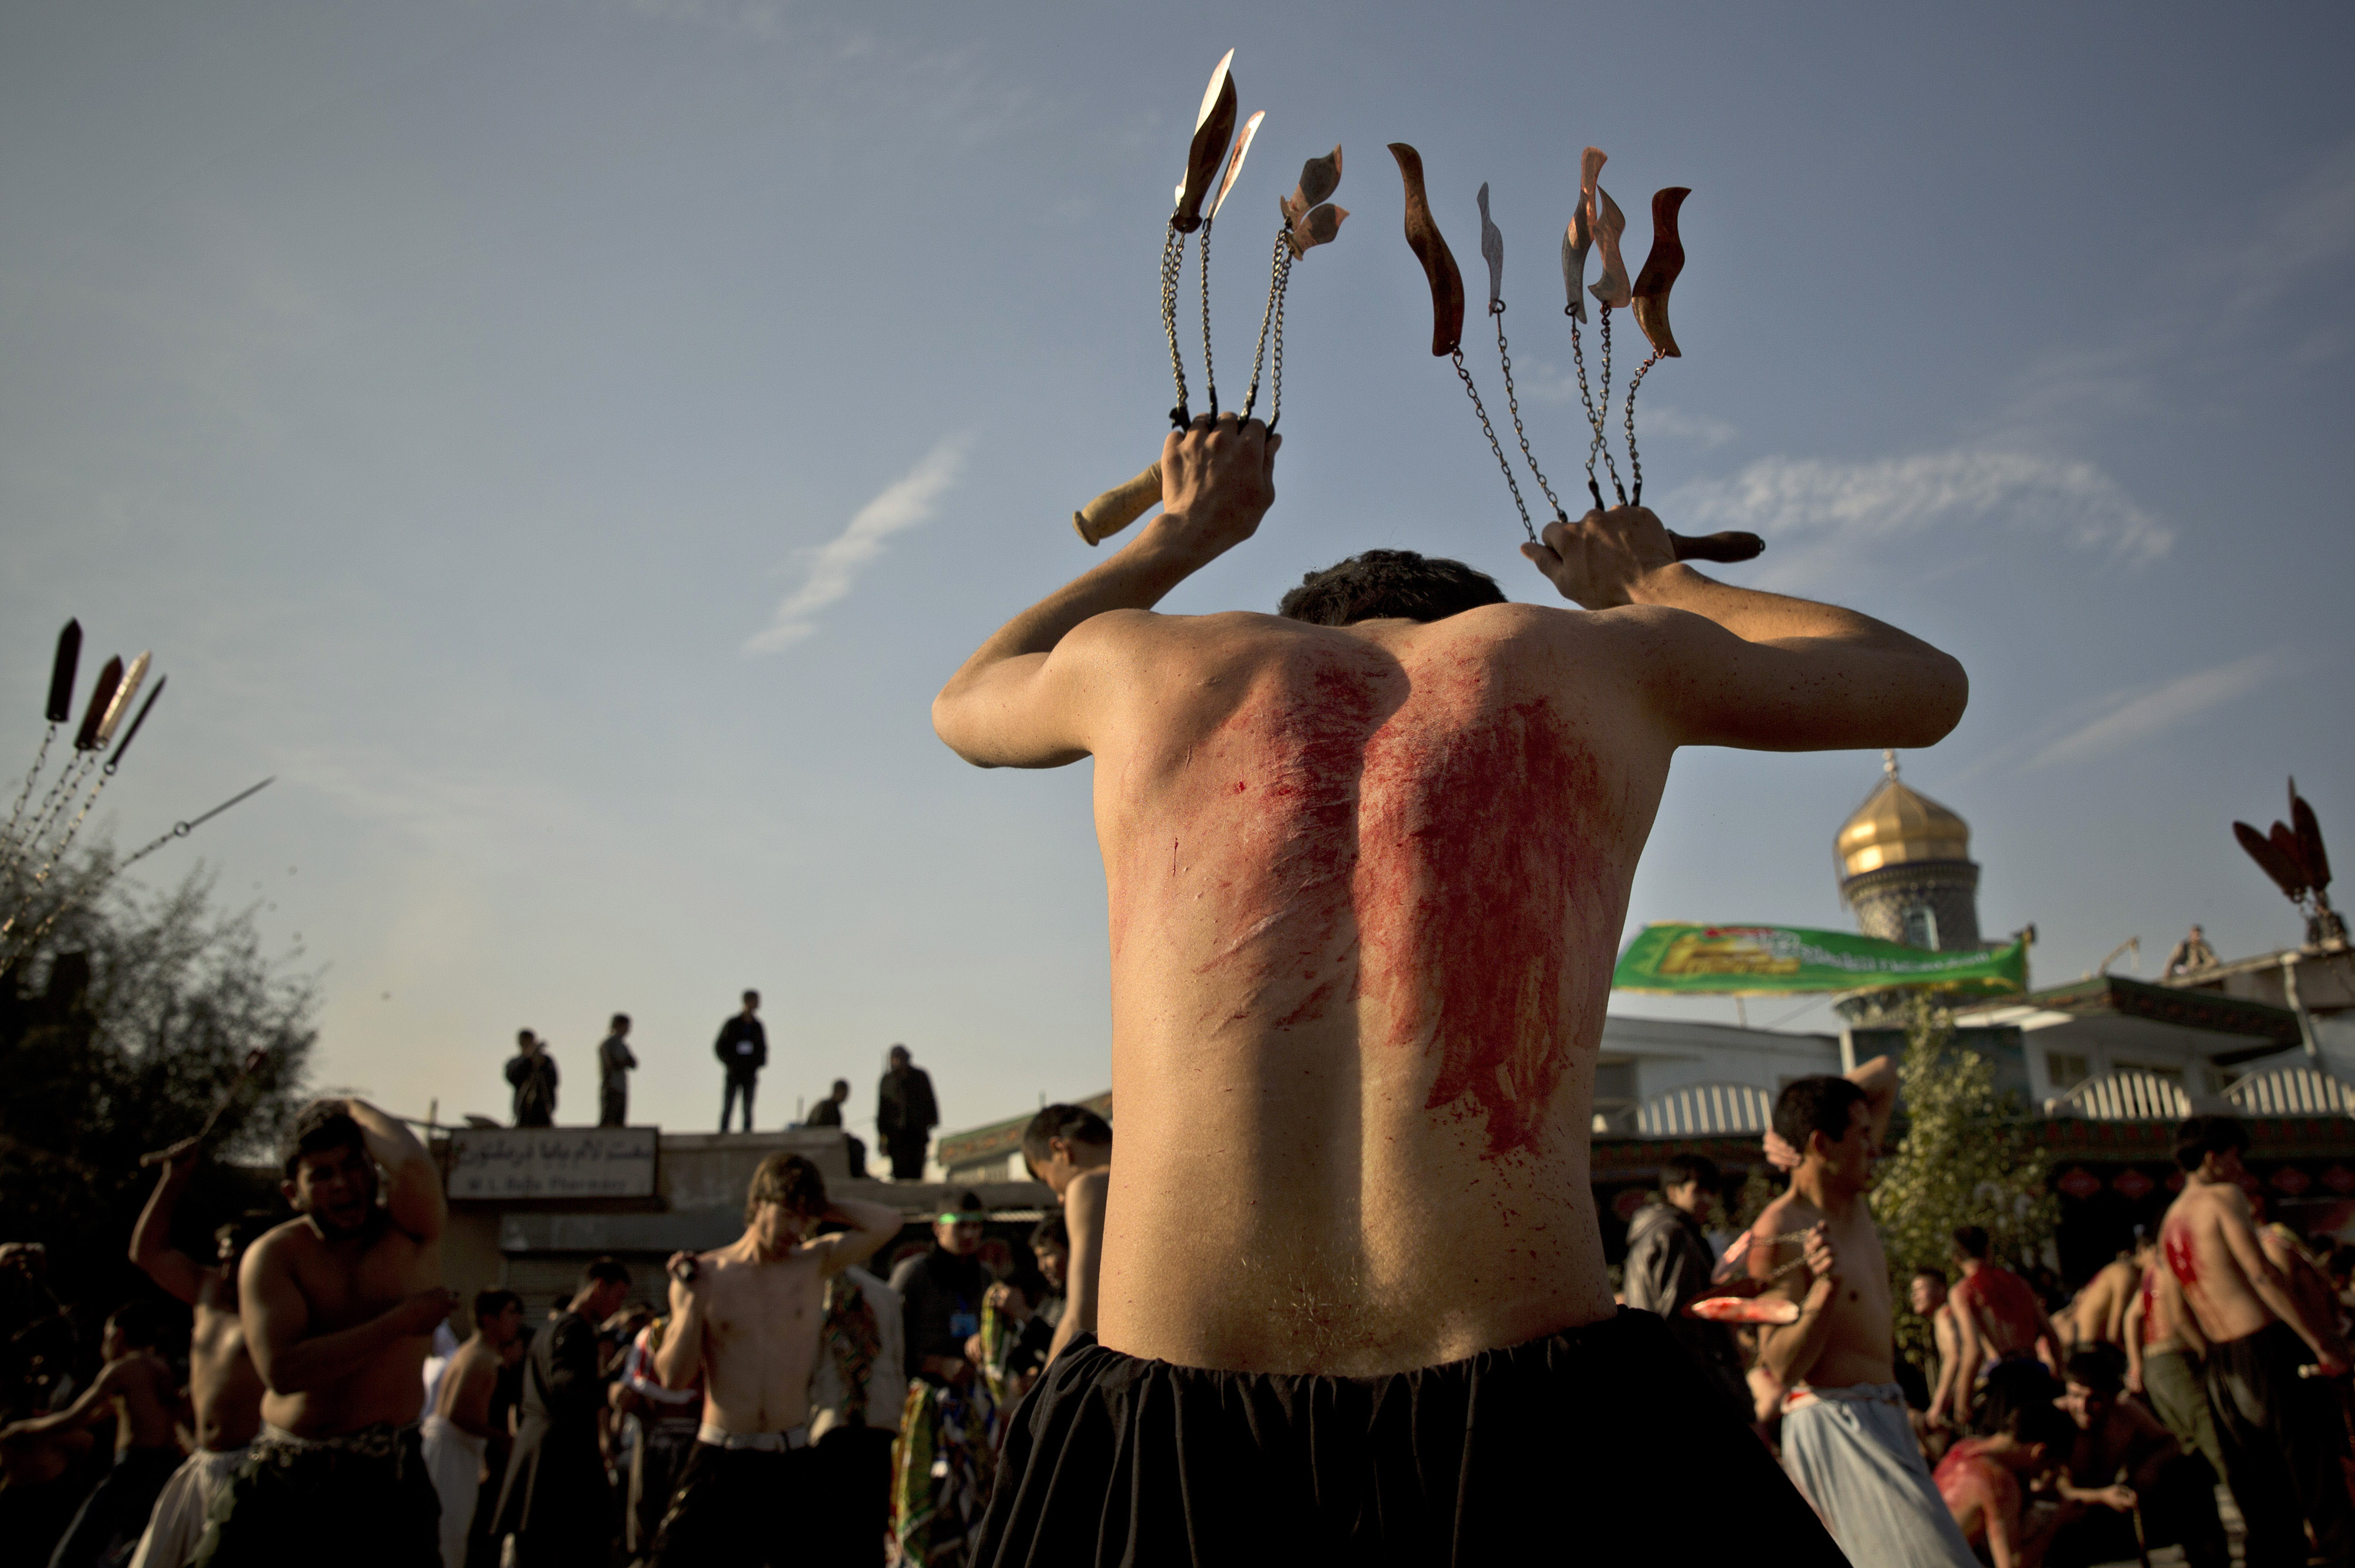 Afghan Shiites beat themselves with chains and blades in a ritual ahead of the Ashura holiday outside the Abul Fazel Shrine in Kabul in November 2013.